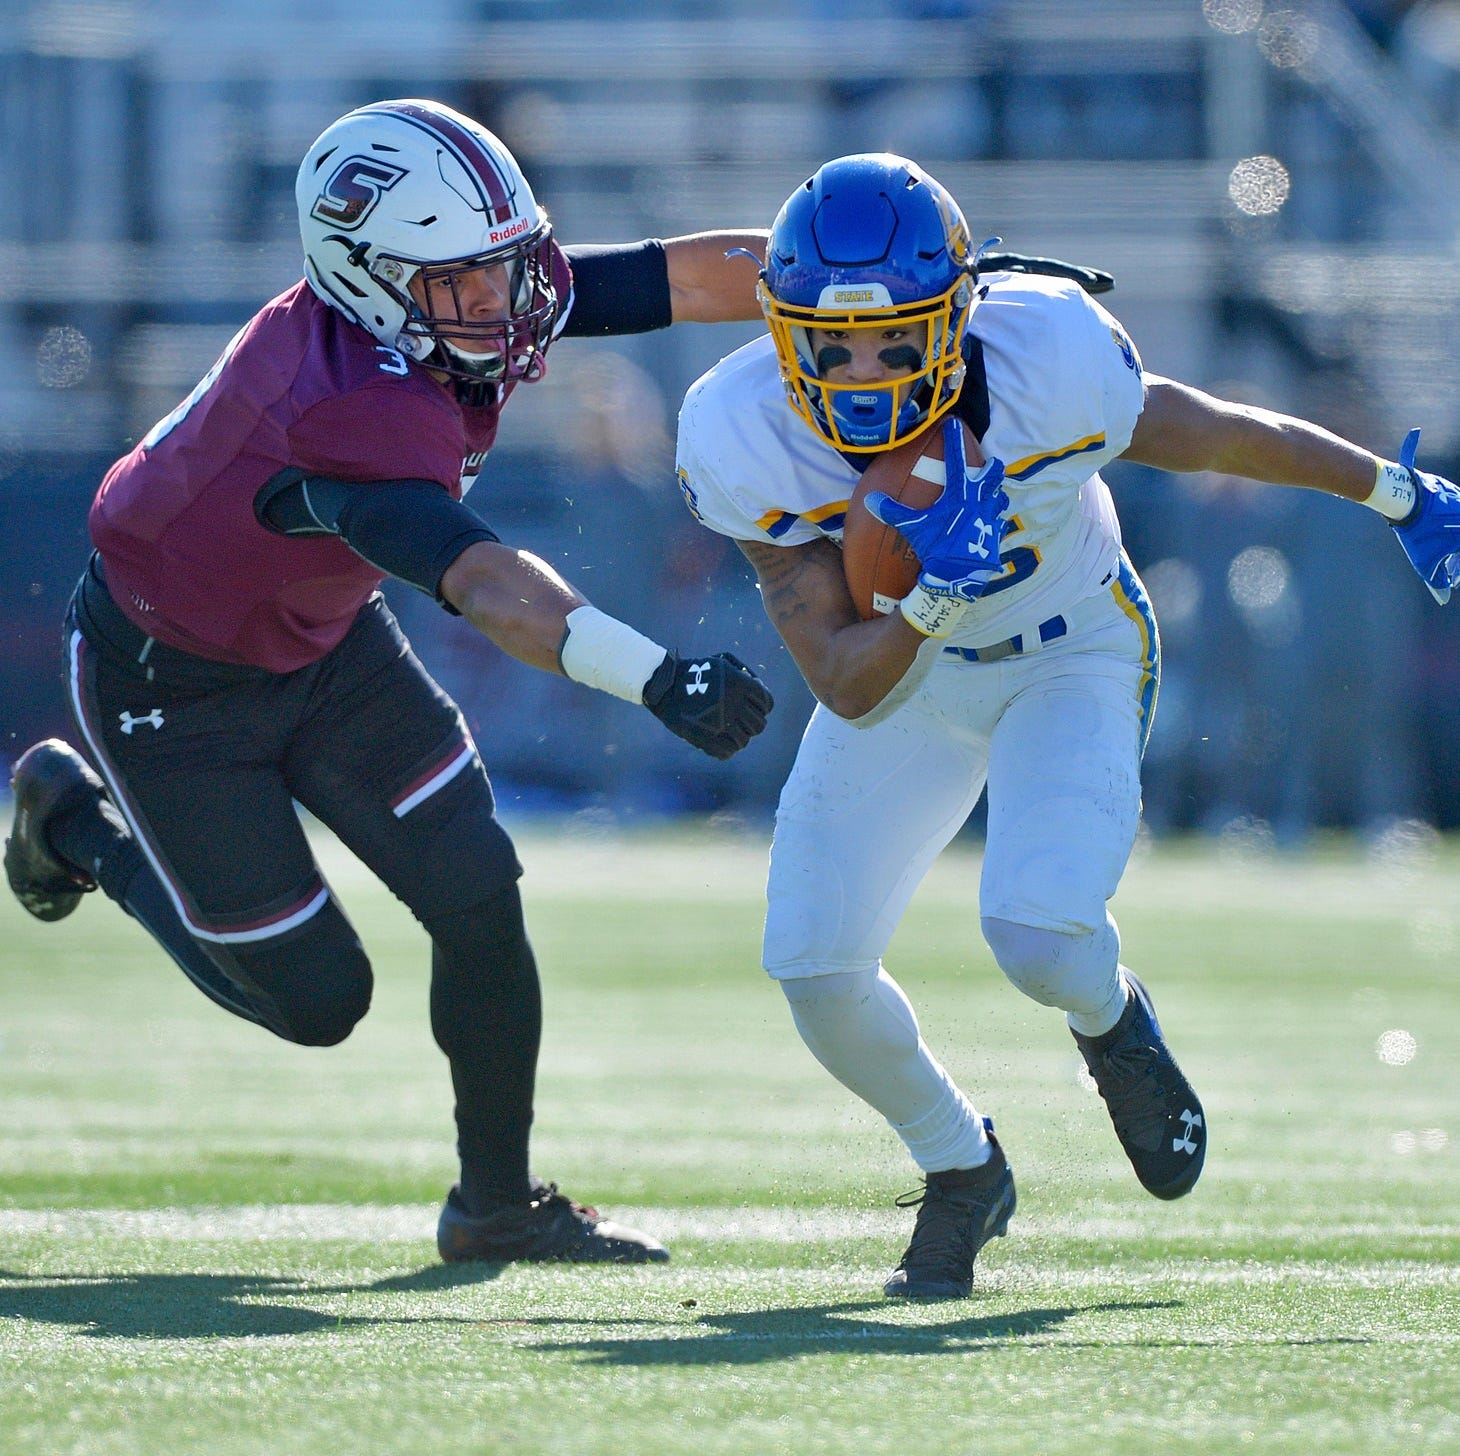 South Dakota State pushes closer to playoff berth after win over Southern Illinois in offensive shootout